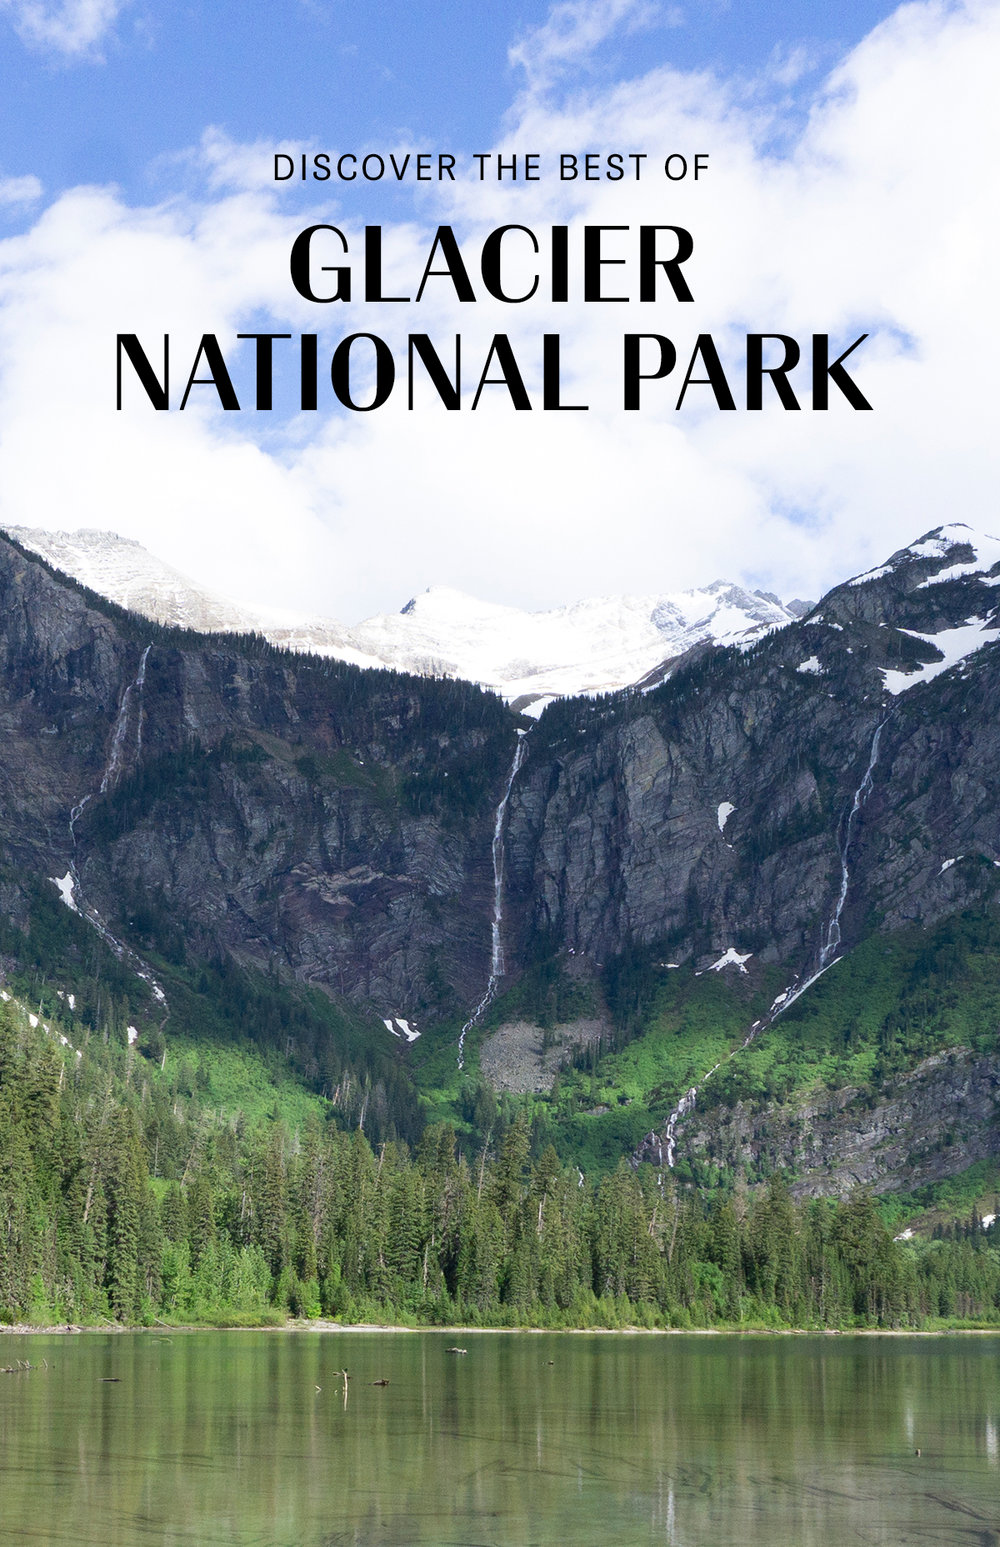 social-chrissihernandez-pin-glacier-national-park-02.jpg